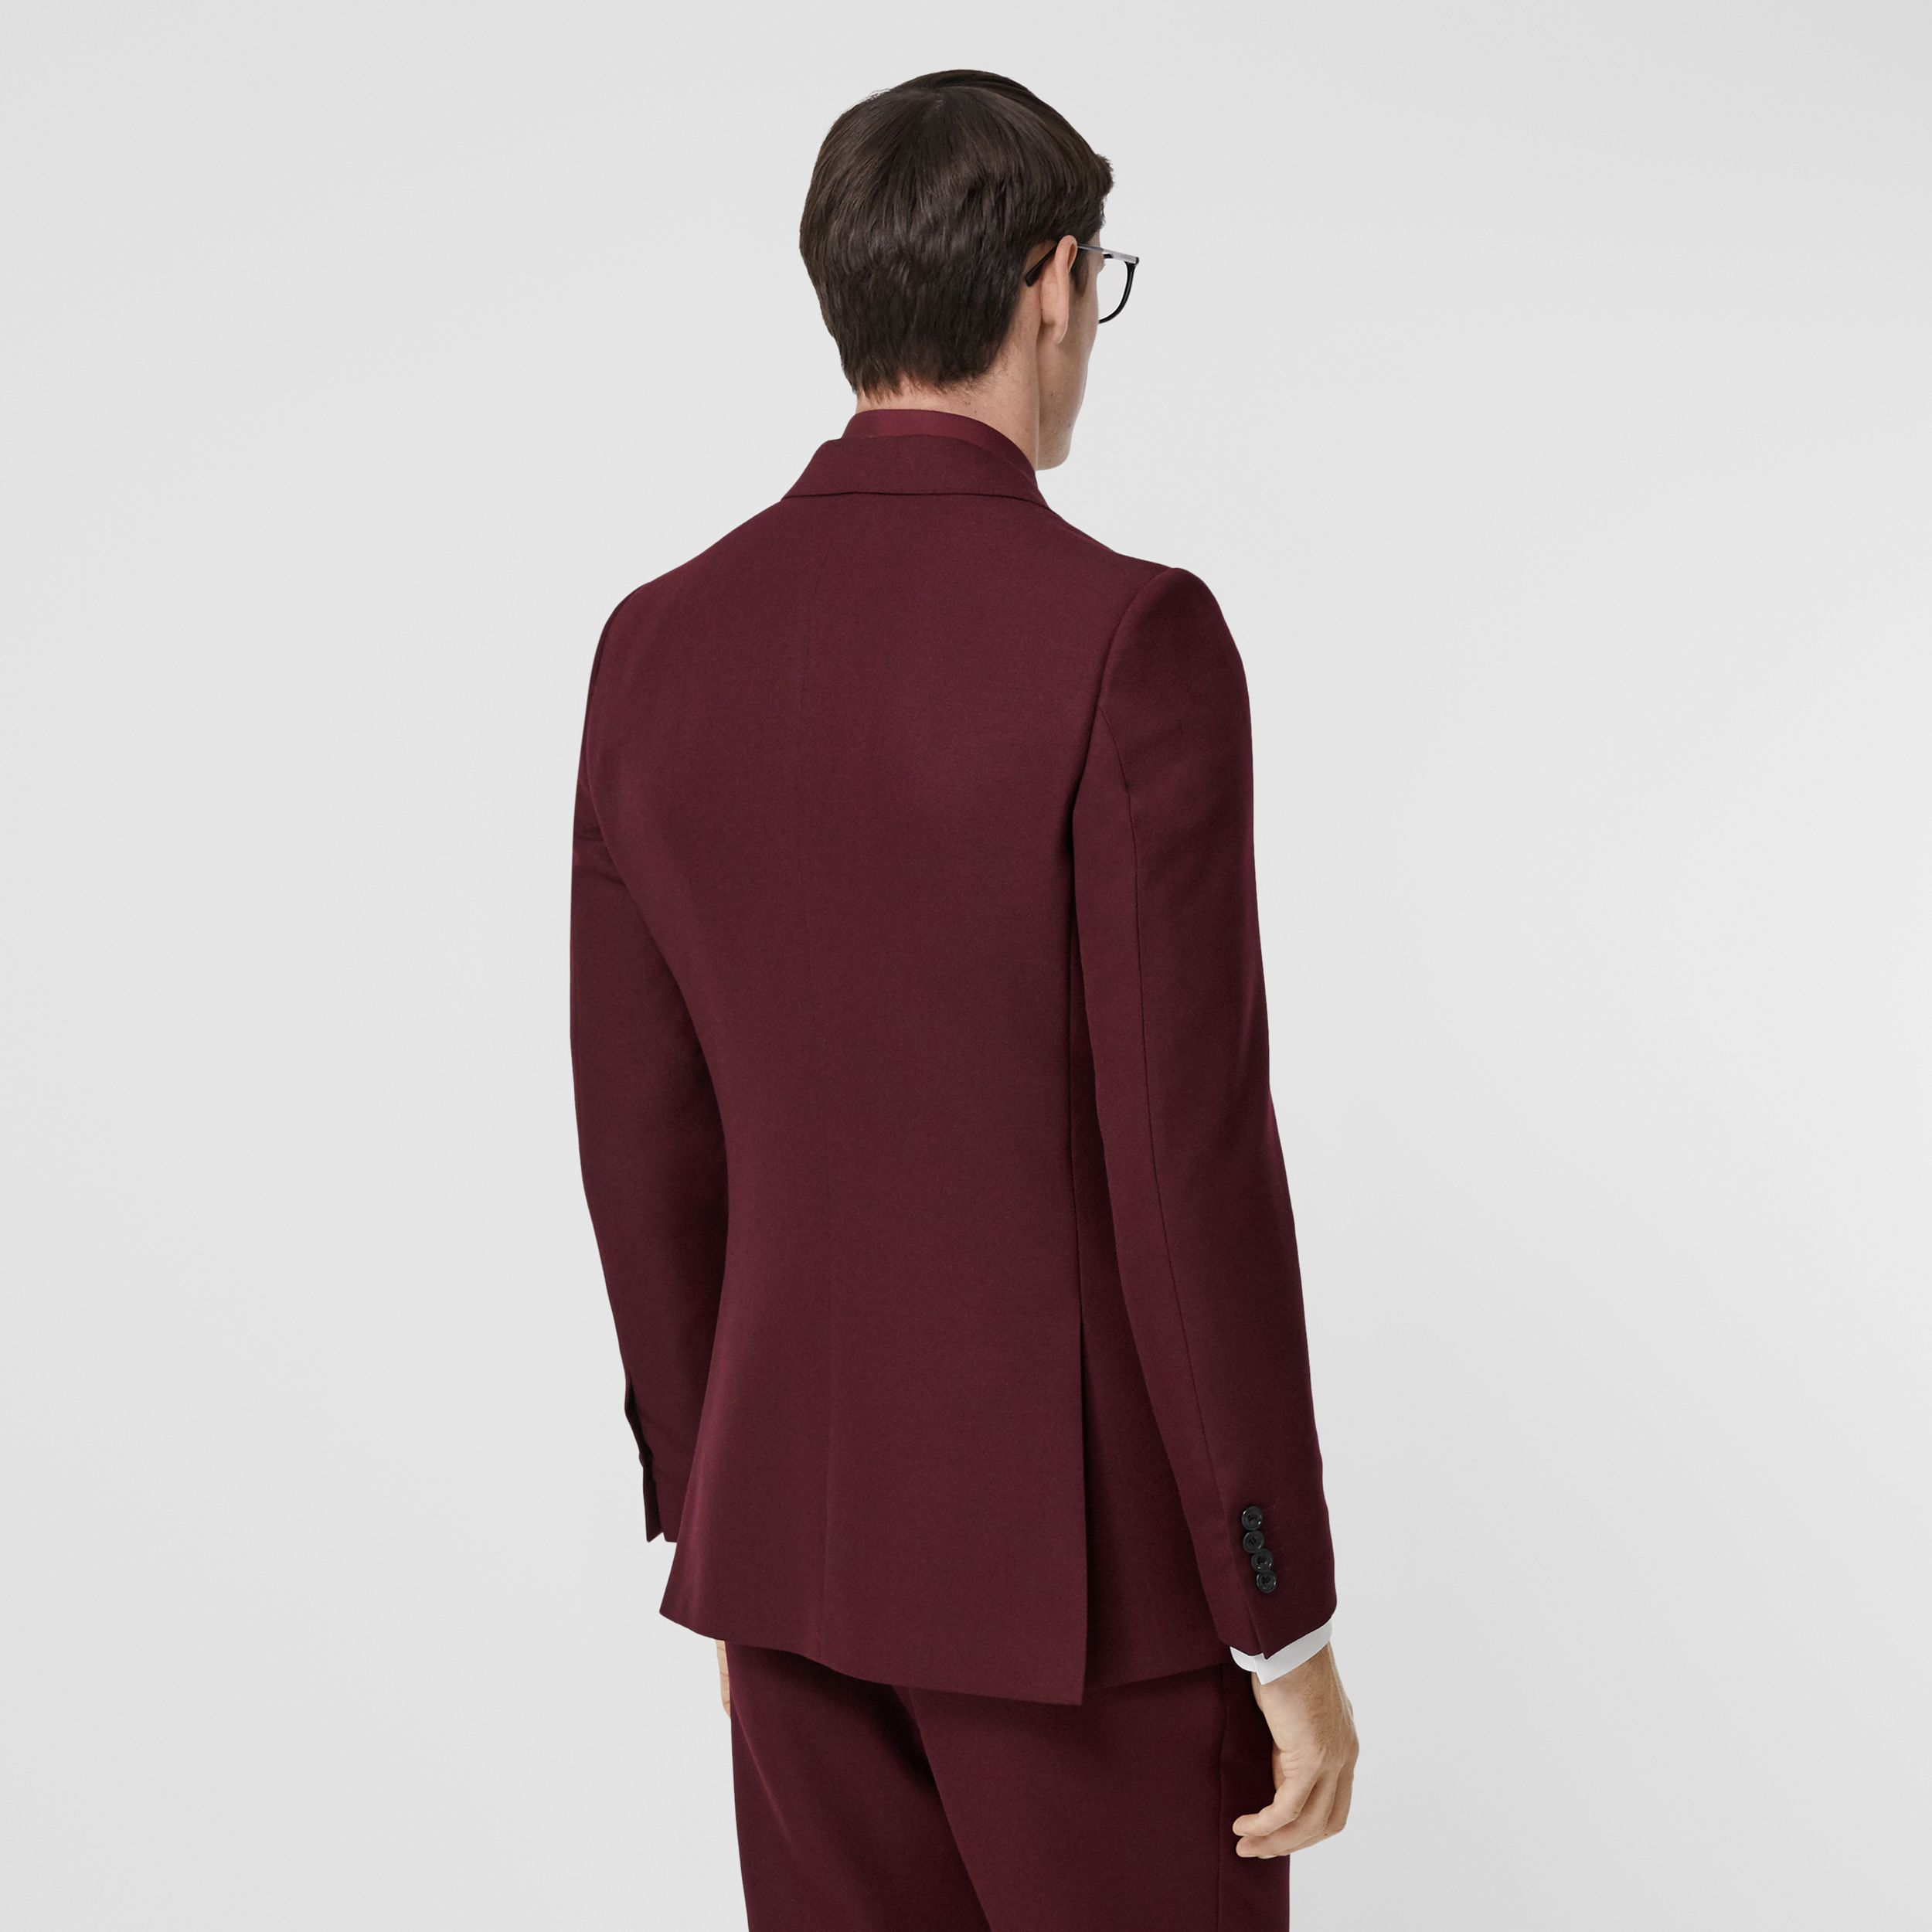 English Fit Wool Mohair Tailored Jacket in Deep Burgundy - Men | Burberry - 3